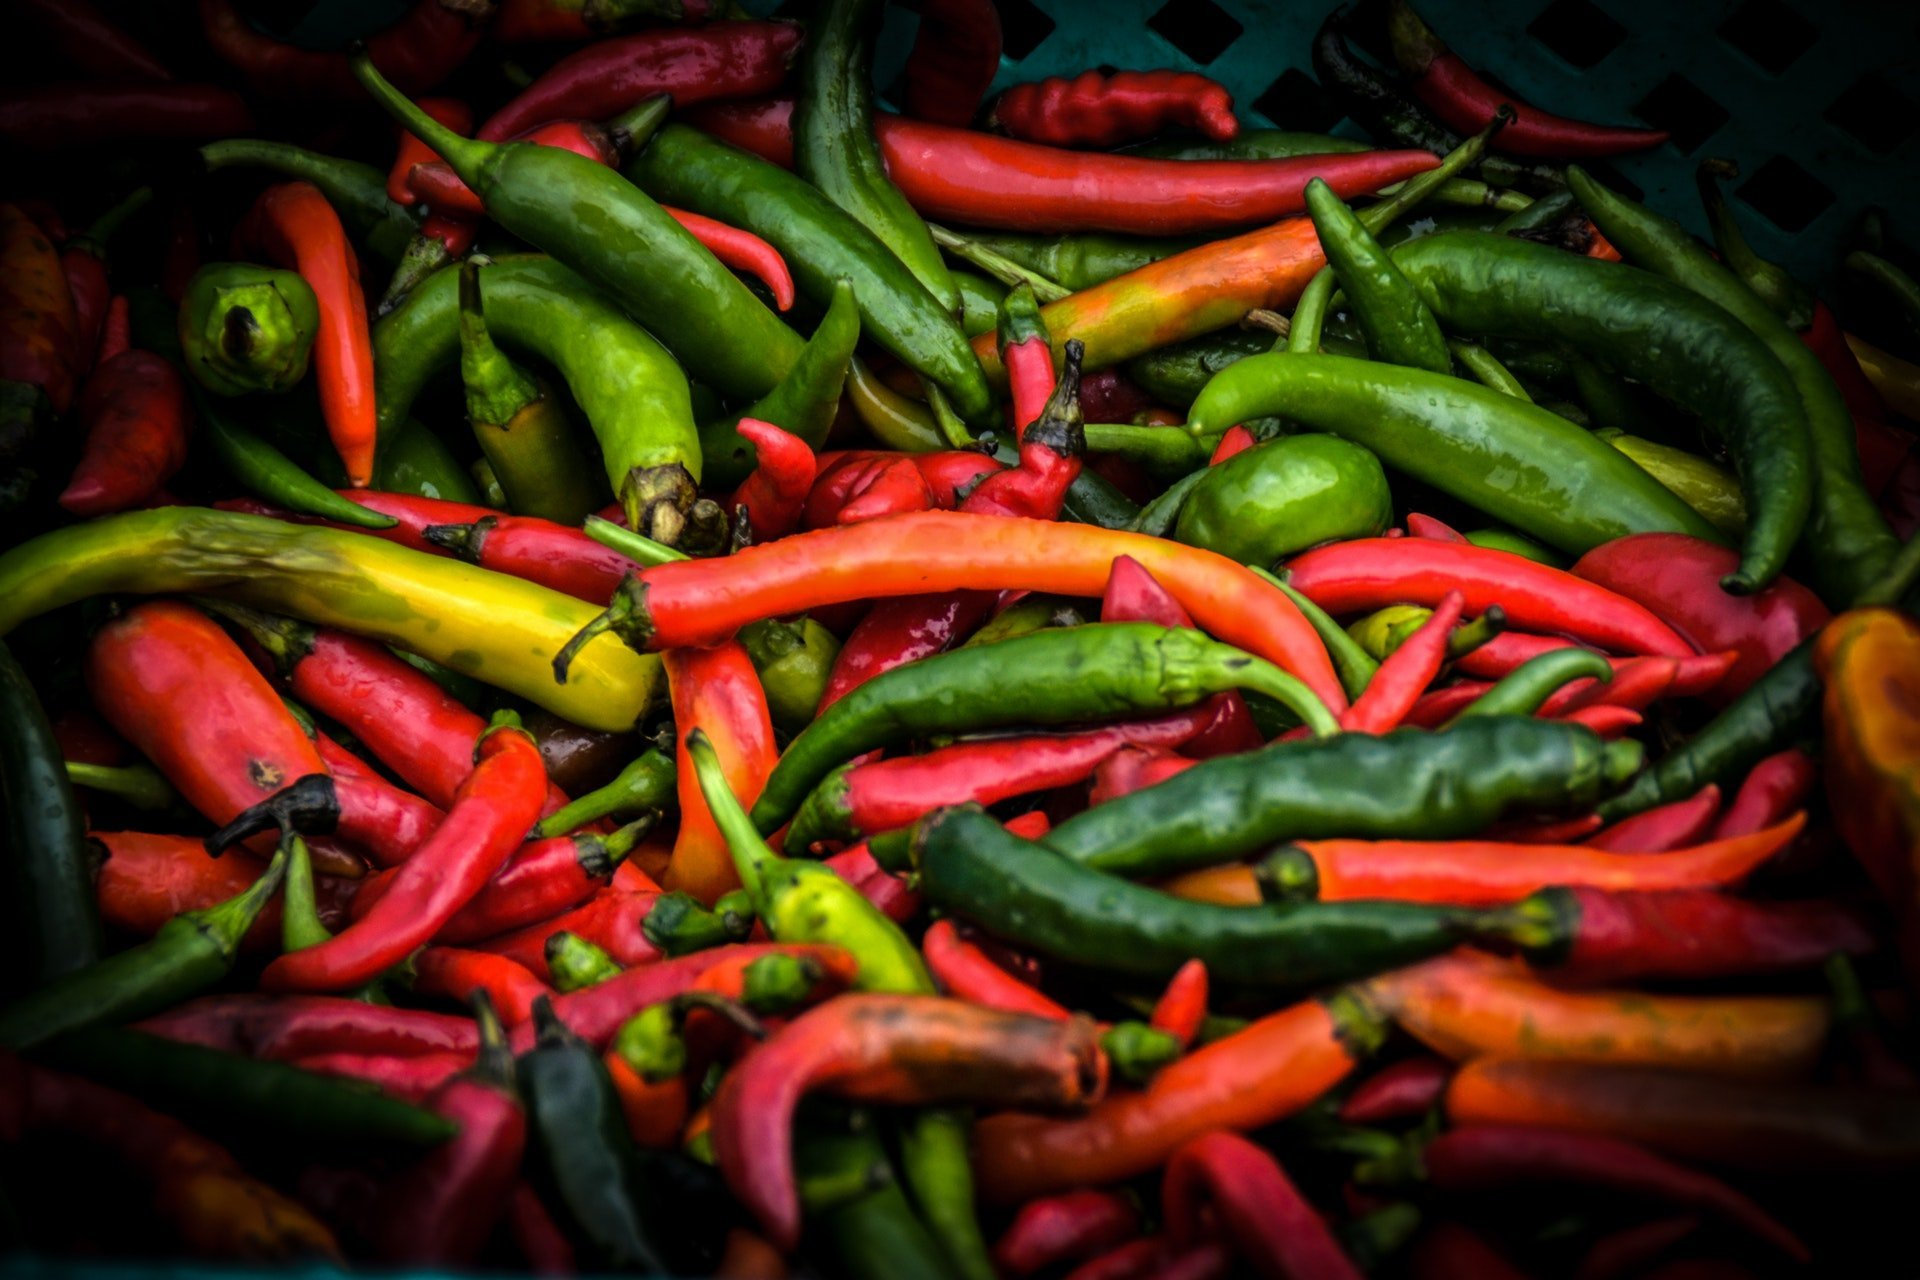 bunch of red and green chili peppers